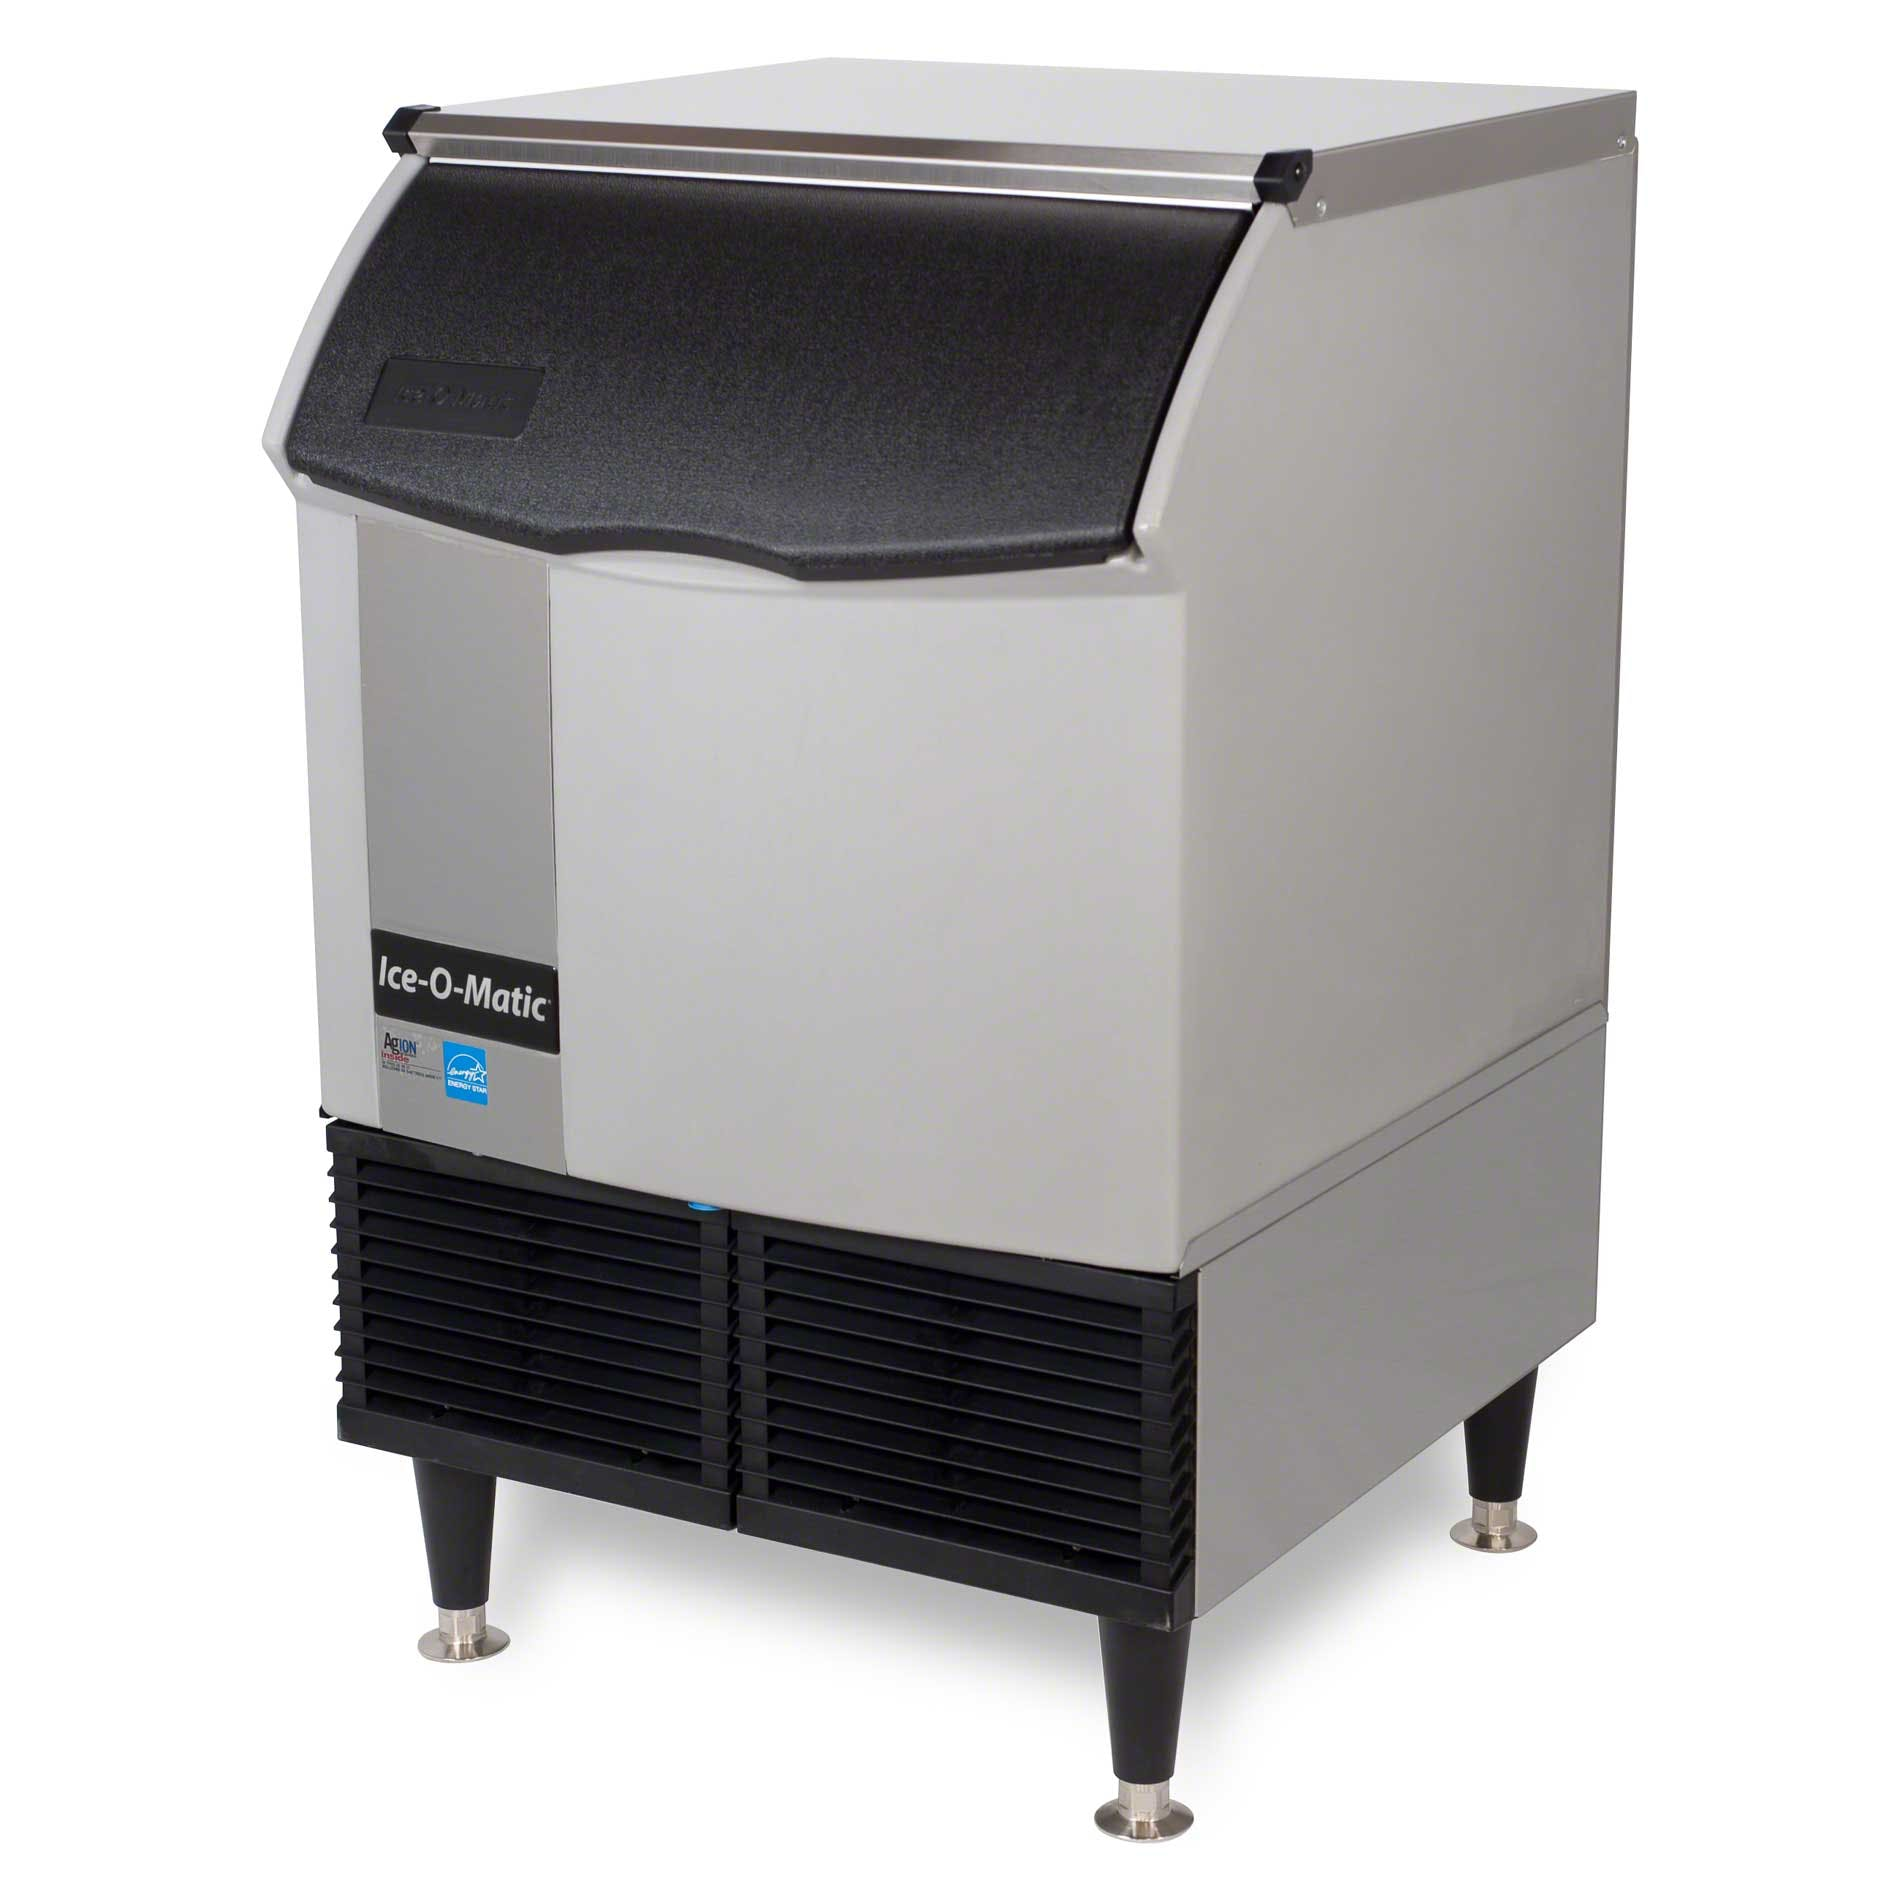 Ice-O-Matic - ICEU226FW 232 lb Self-Contained Full Cube Ice Machine Ice machine sold by Food Service Warehouse